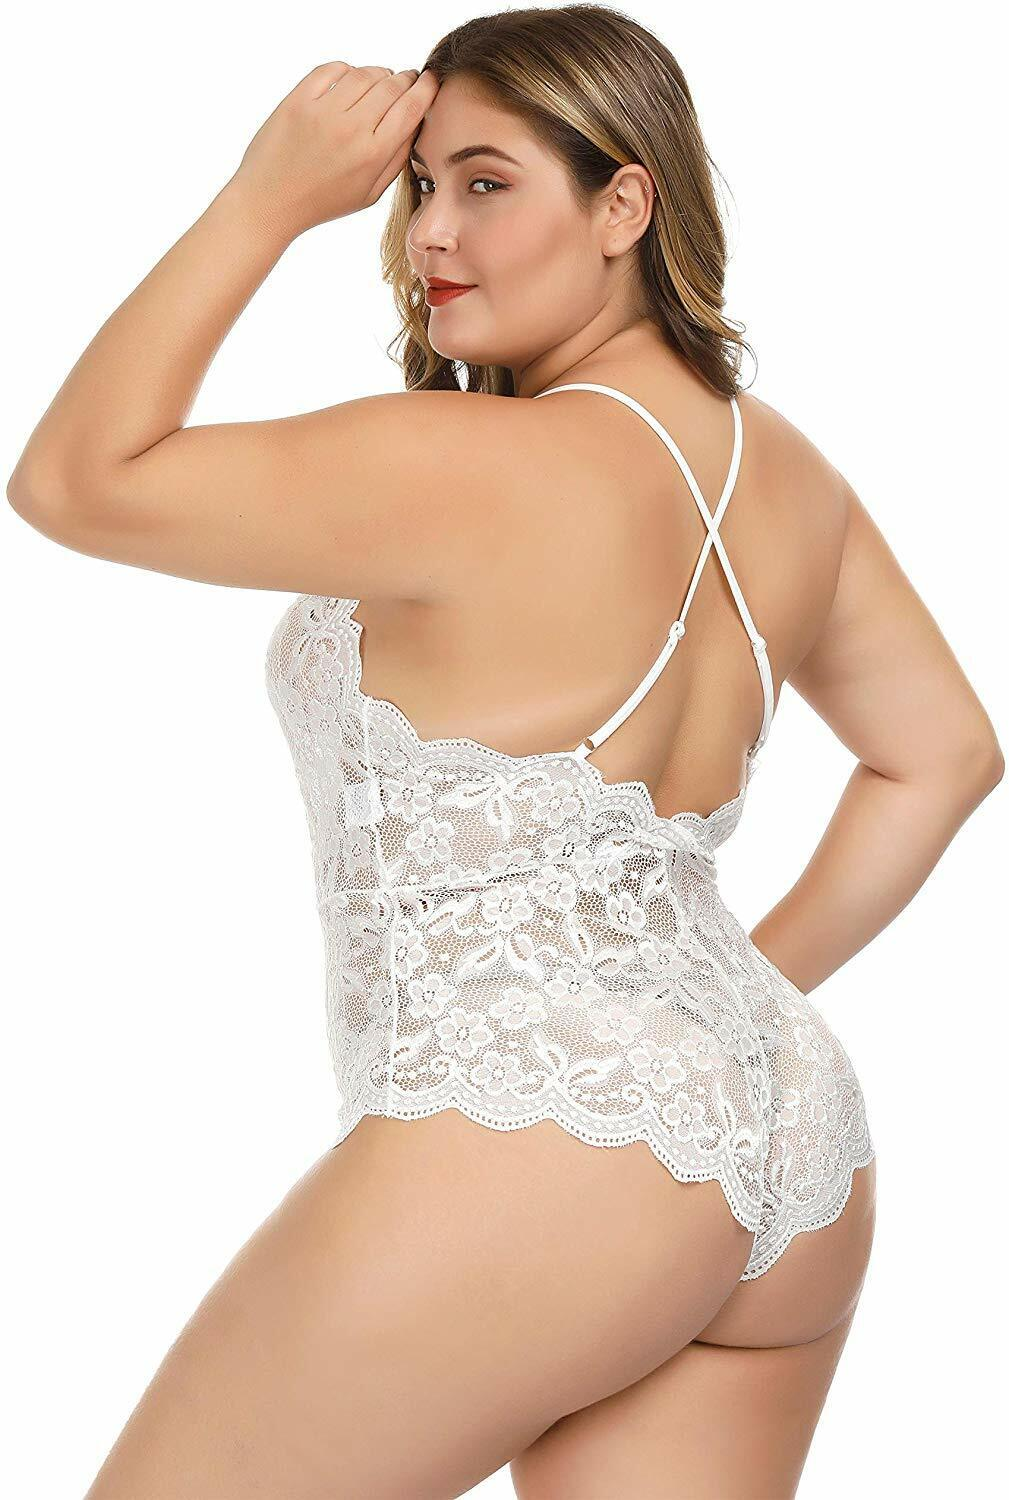 Women Lace Teddy Sexy Lingerie Bodysuit One Piece Babydoll Nightwear Plus Size Clothing, Shoes & Accessories